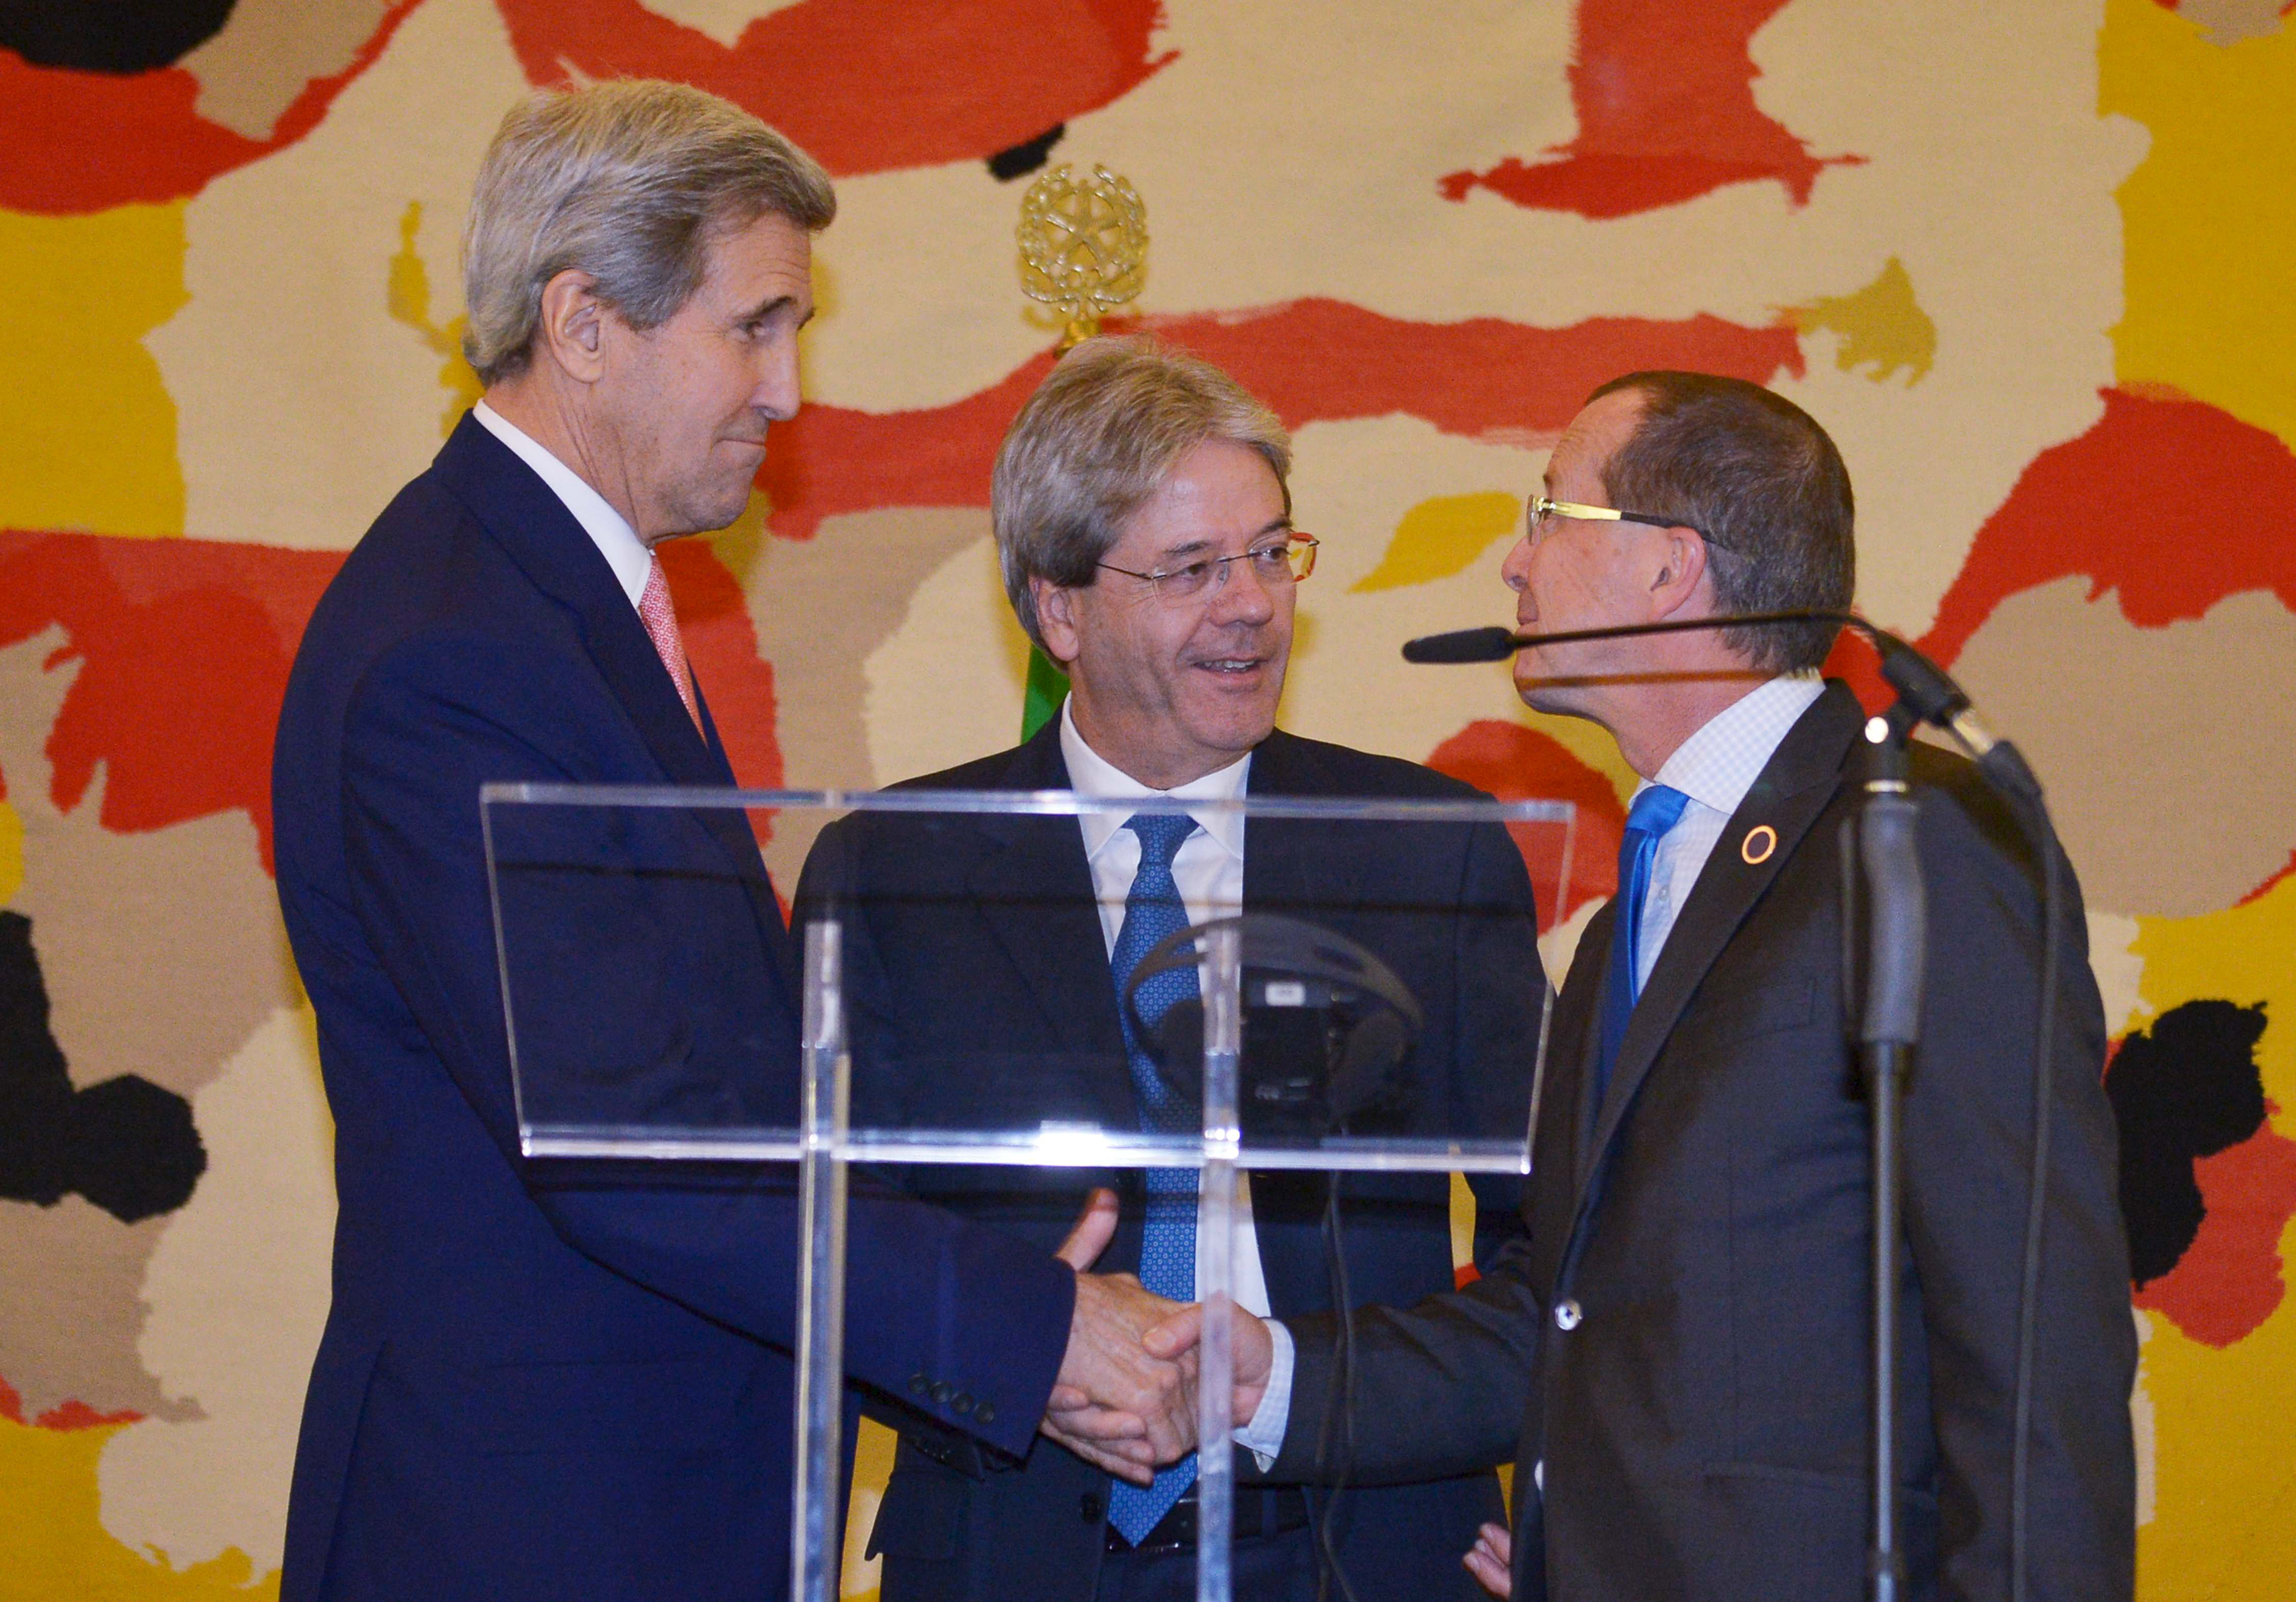 Italy's Foreign Minister Paolo Gentiloni (C), U.S. Secretary of State John Kerry (L) and UN special envoy for Libya Martin Kobler at a joint news conference following an international conference on Libya at the Ministry of Foreign Affairs in Rome, De...